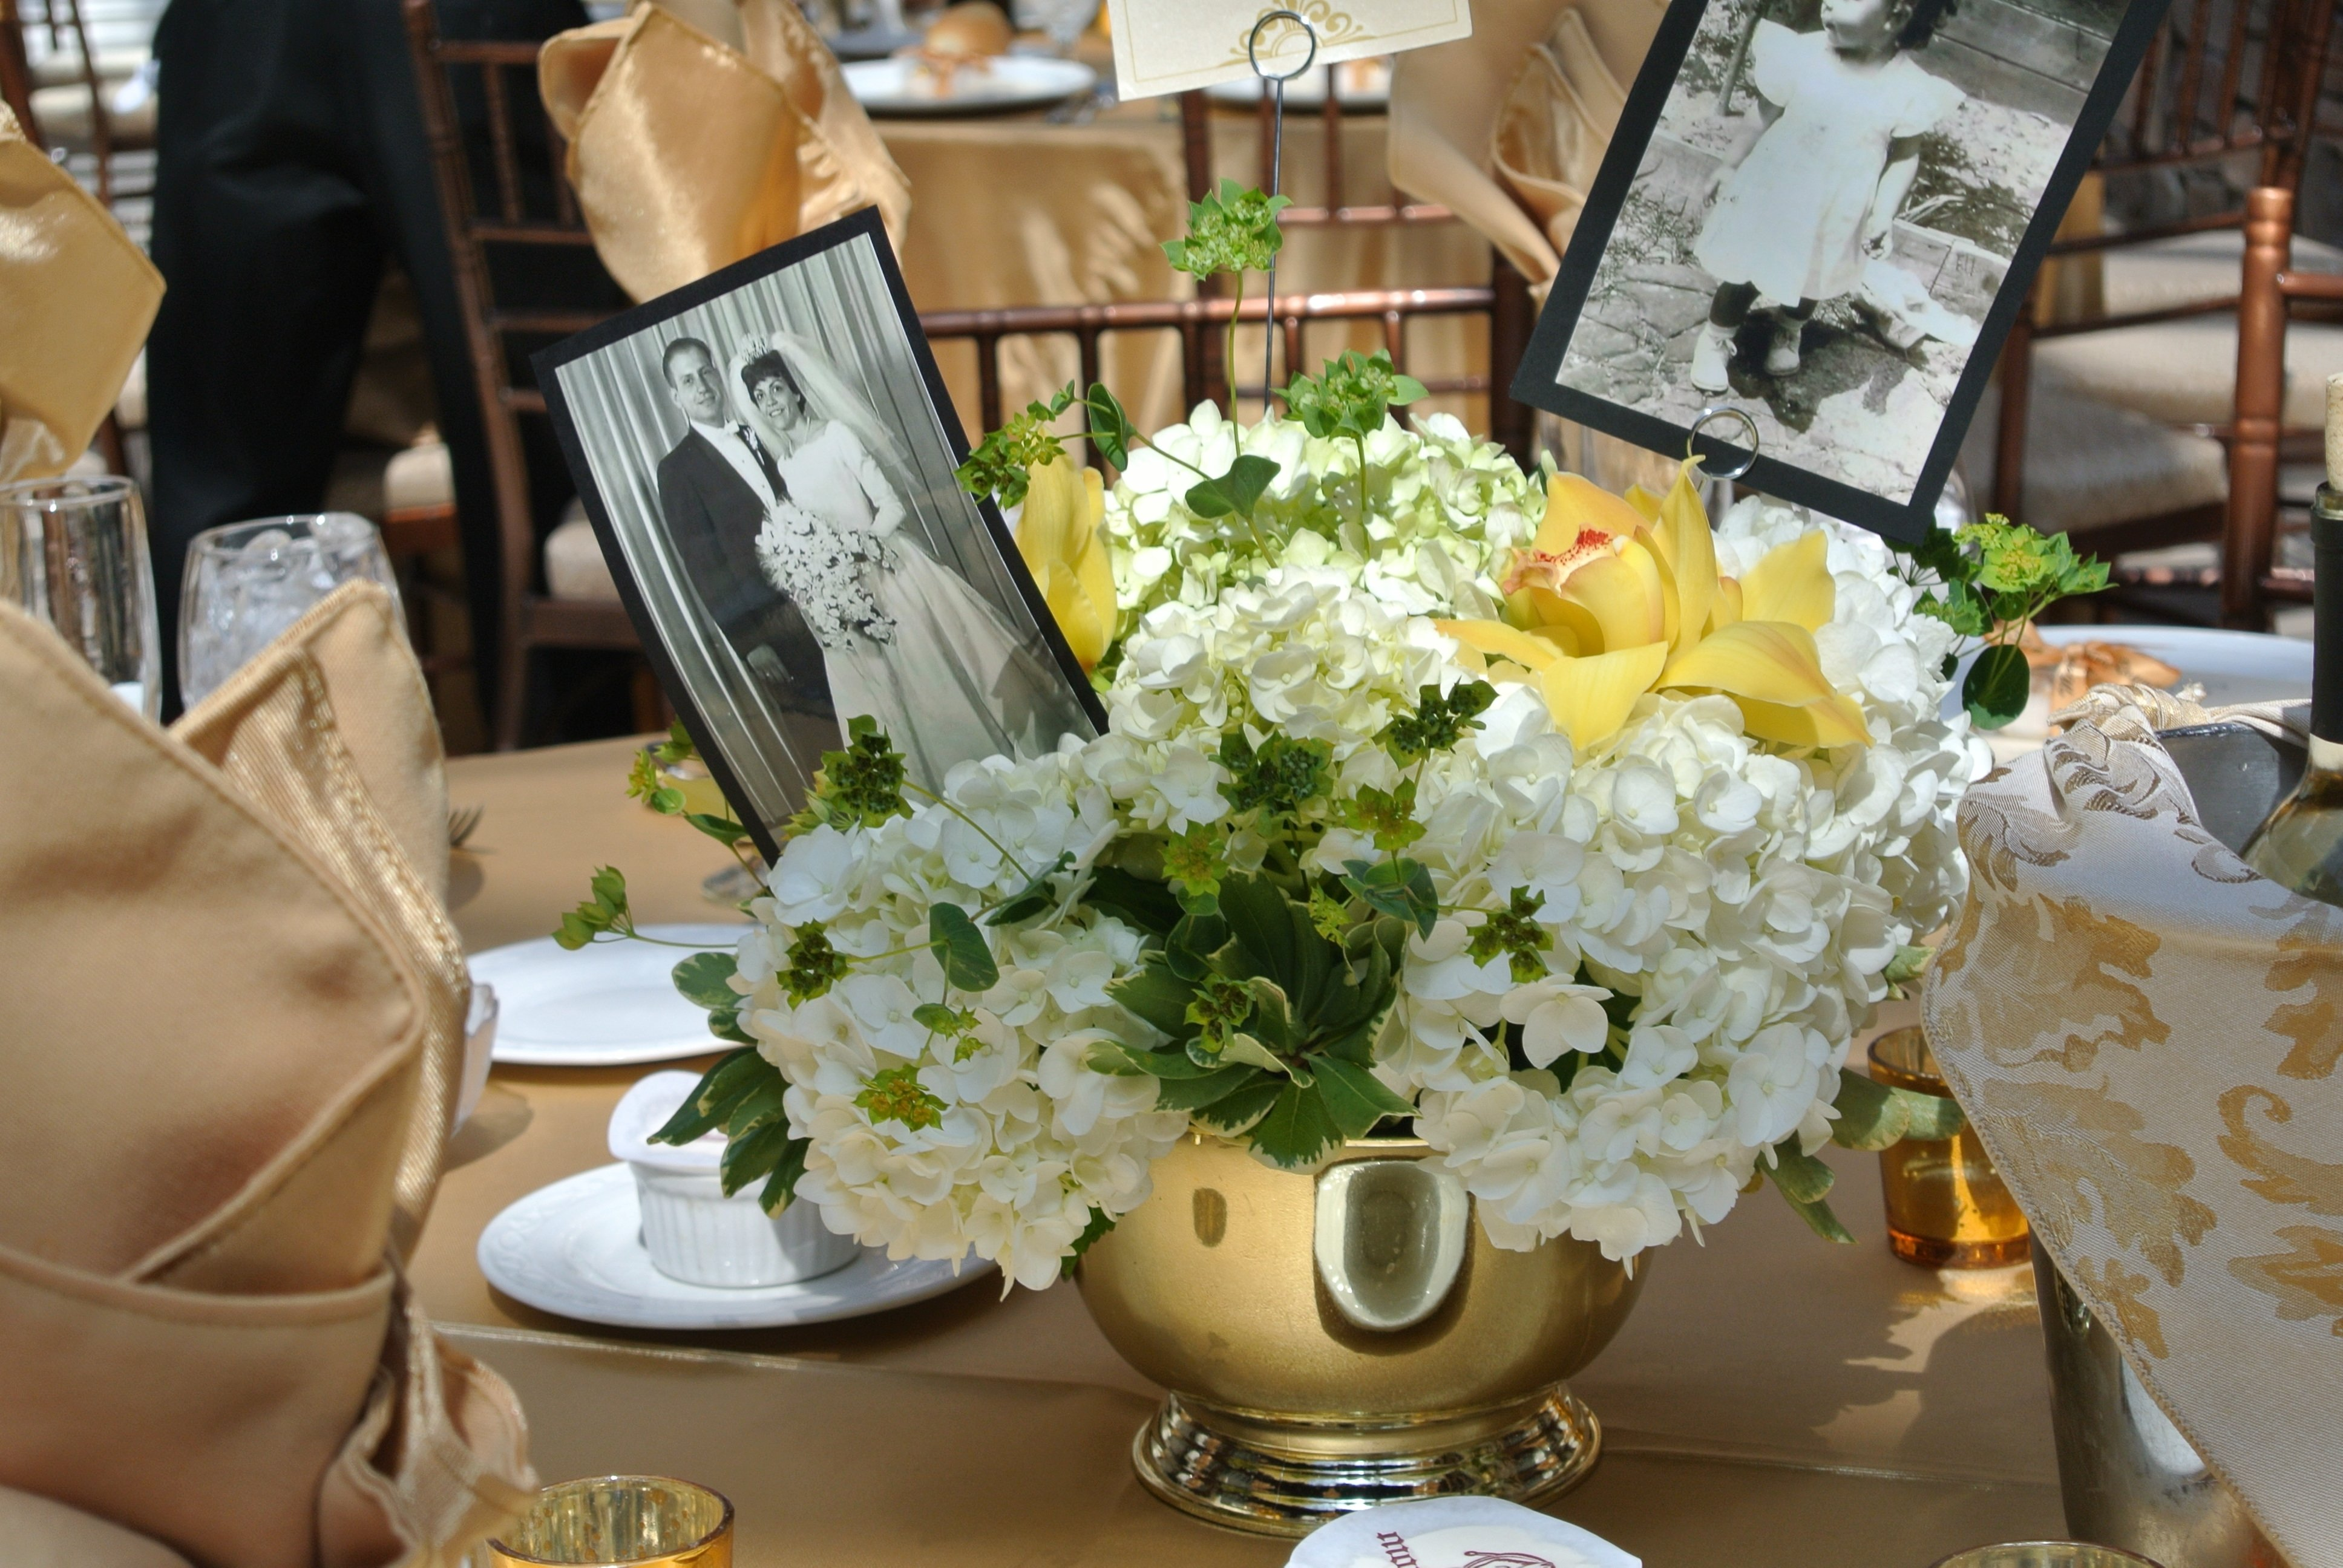 10 Great 60Th Wedding Anniversary Party Ideas wedding decor amazing wedding anniversary decorations gallery 2020